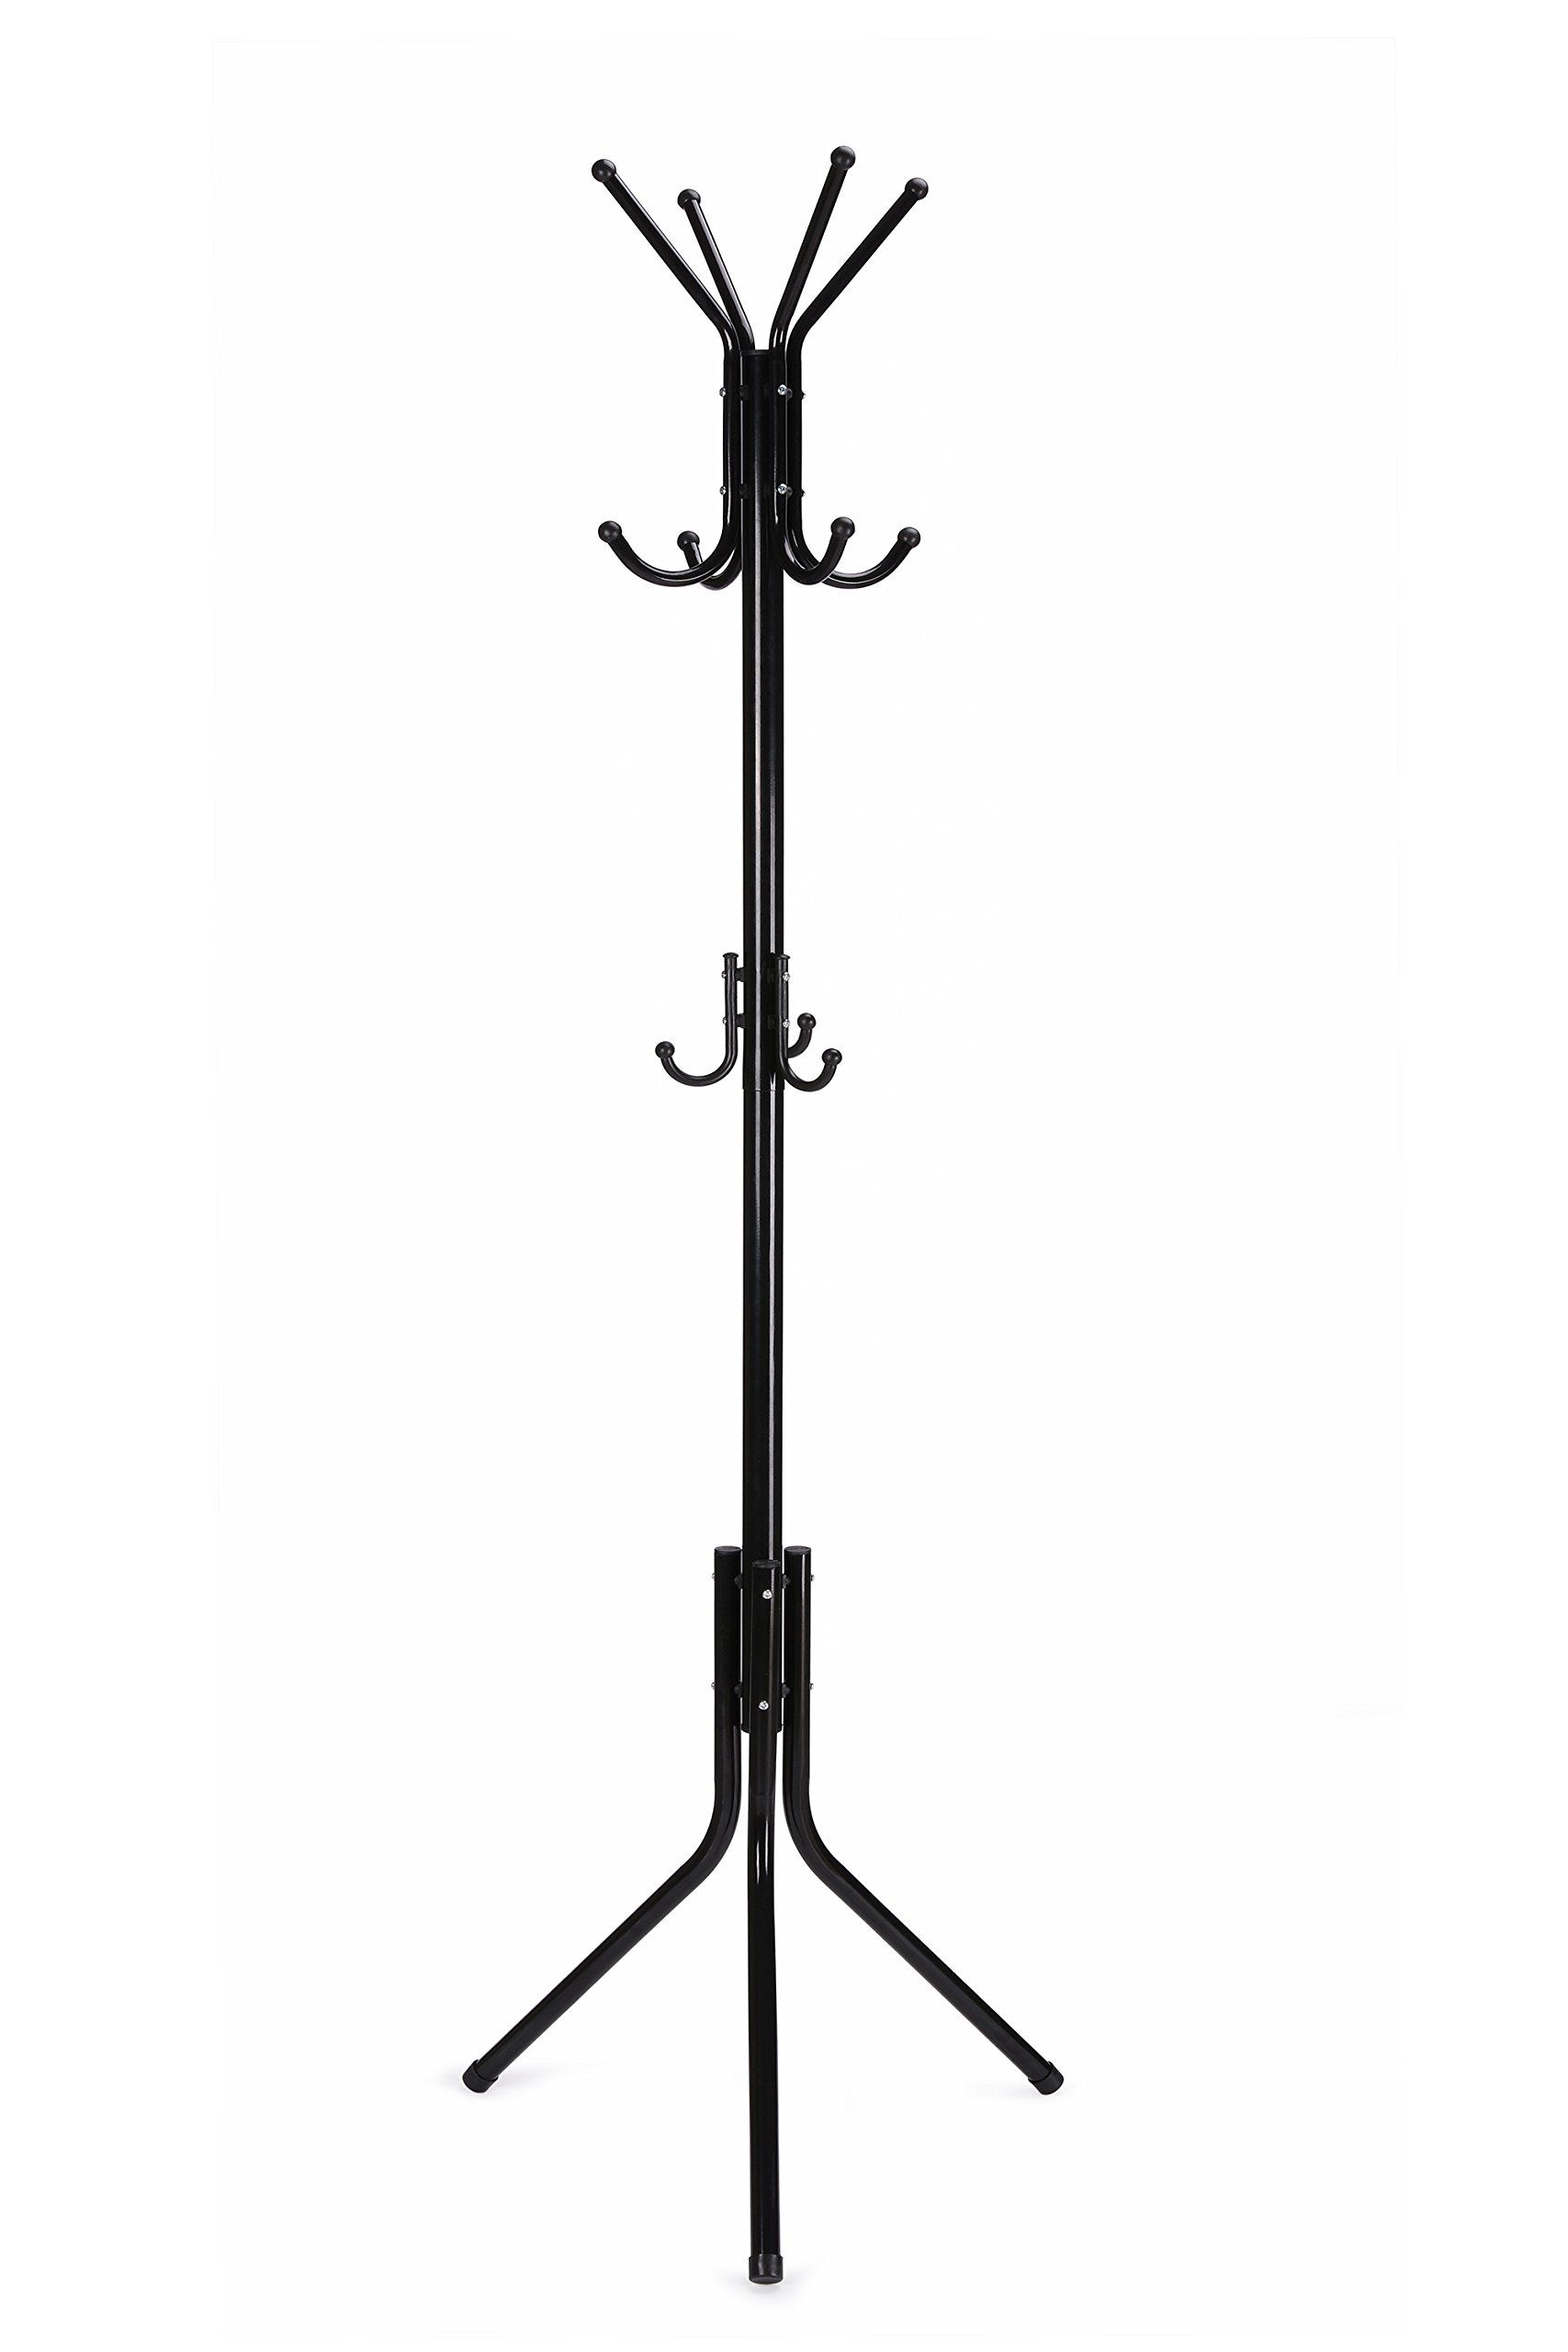 Wilshine Coat Rack Standing Coat Tree Metal Black With 11 Hooks Sturdy Diameter Expanded Main Pole And Tripod Legs Make This Standing Coat Rack Able To Bear